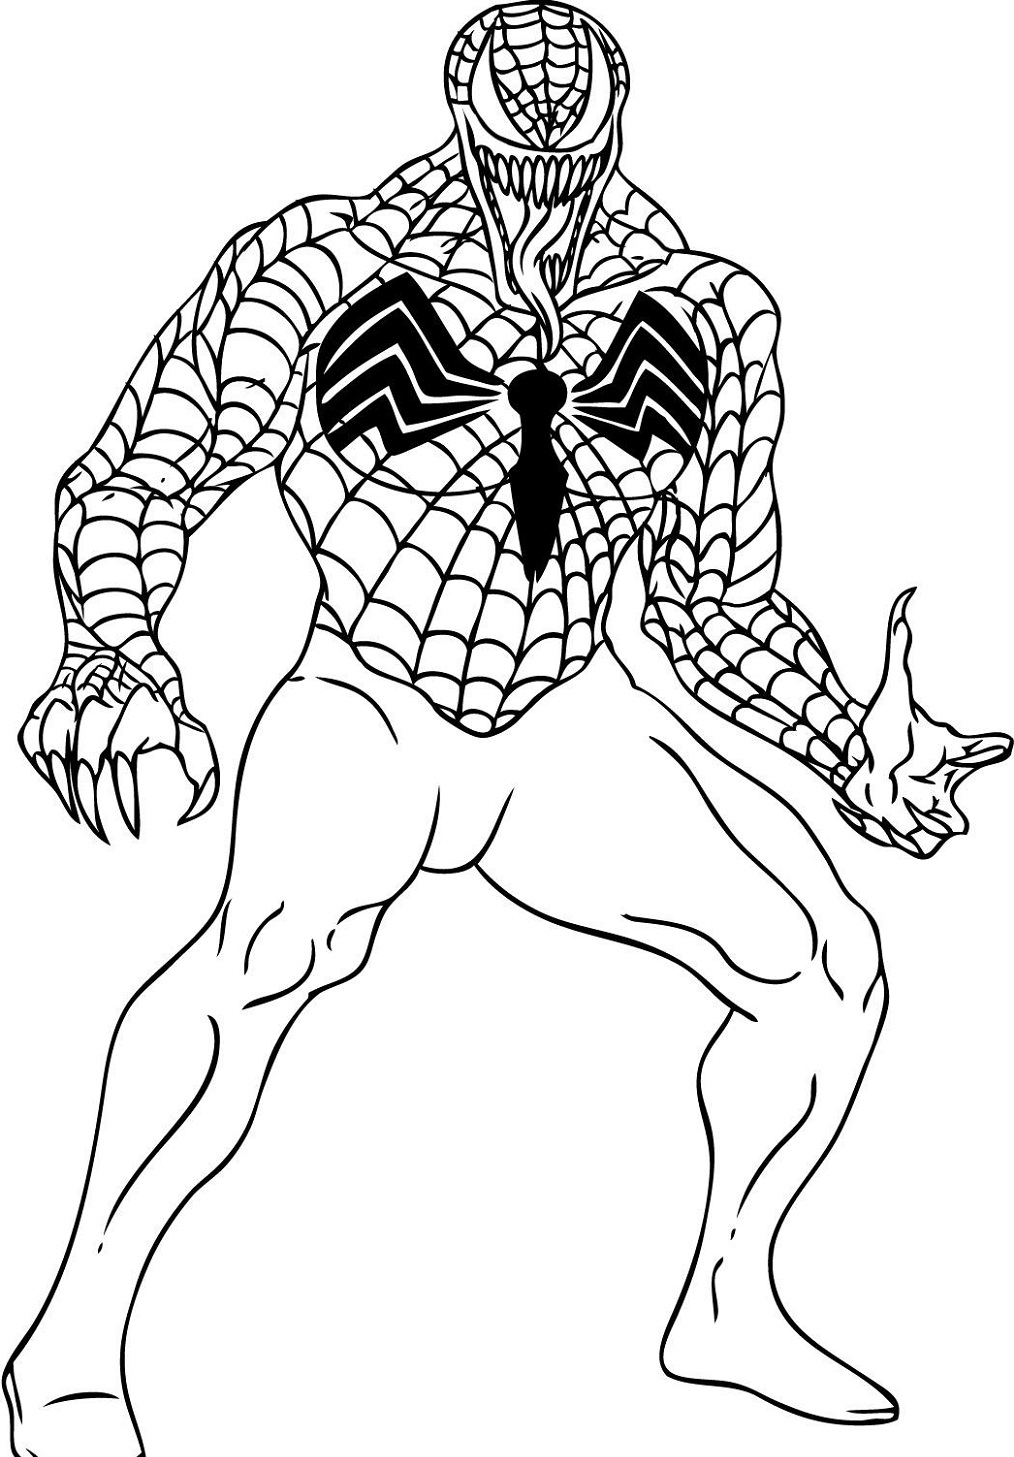 spiderman picture to color print download spiderman coloring pages an enjoyable color to spiderman picture 1 1